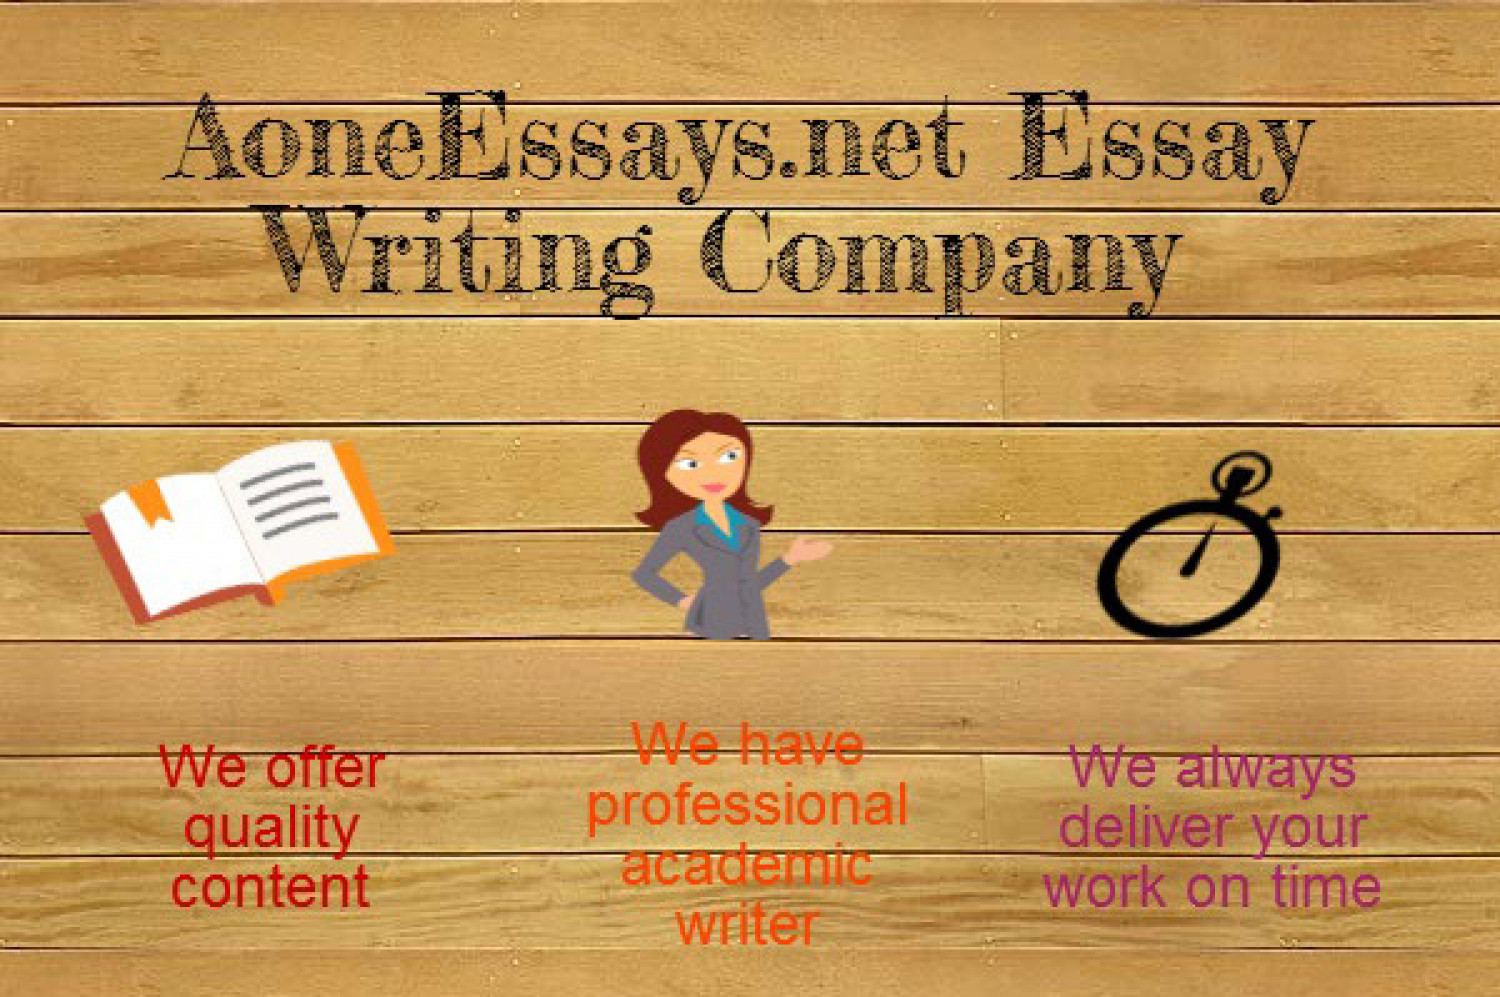 Example Of An Analysis Essay Essay Editing Service Co Essay Editing Service First Person Essay Example also Taking A Stand Essay Topics College Essay Editing Services Essay Proofreading Resume  English Essay Topics For College Students